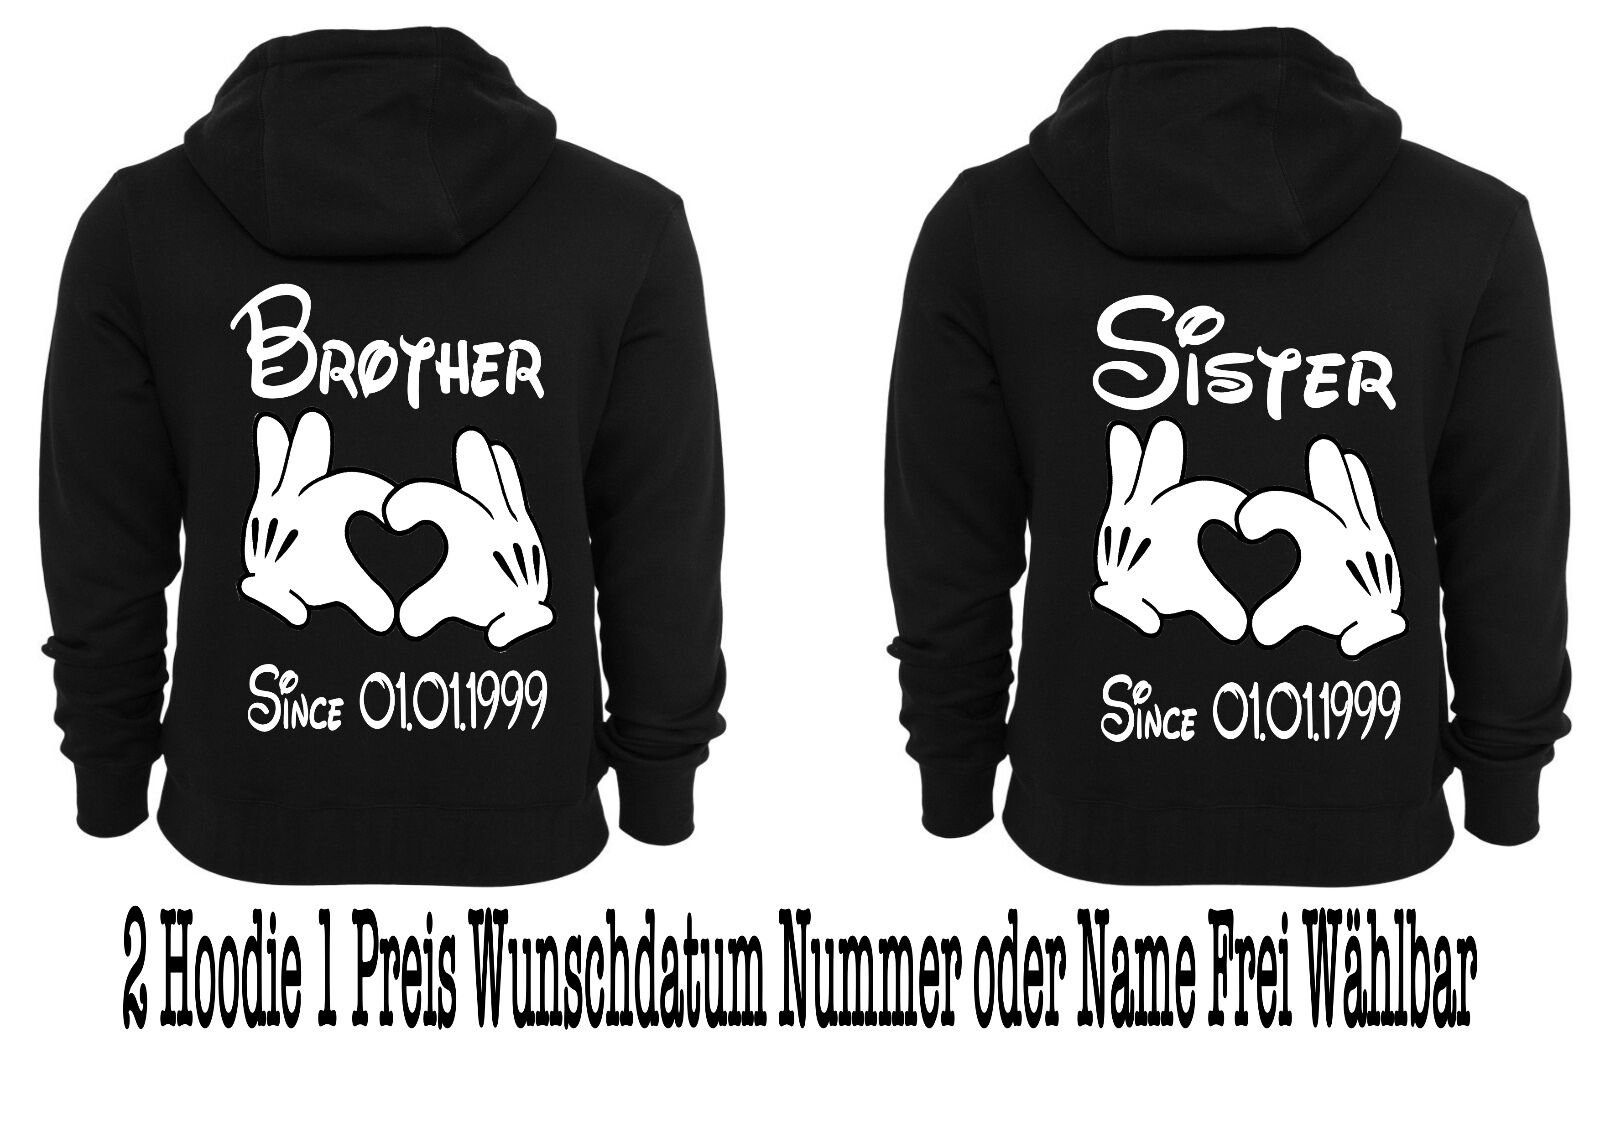 Pullover Hoodie BROTHER Sister Sister Sister motivo partner LOOK One Love XS - 5xl desiderio data dea515